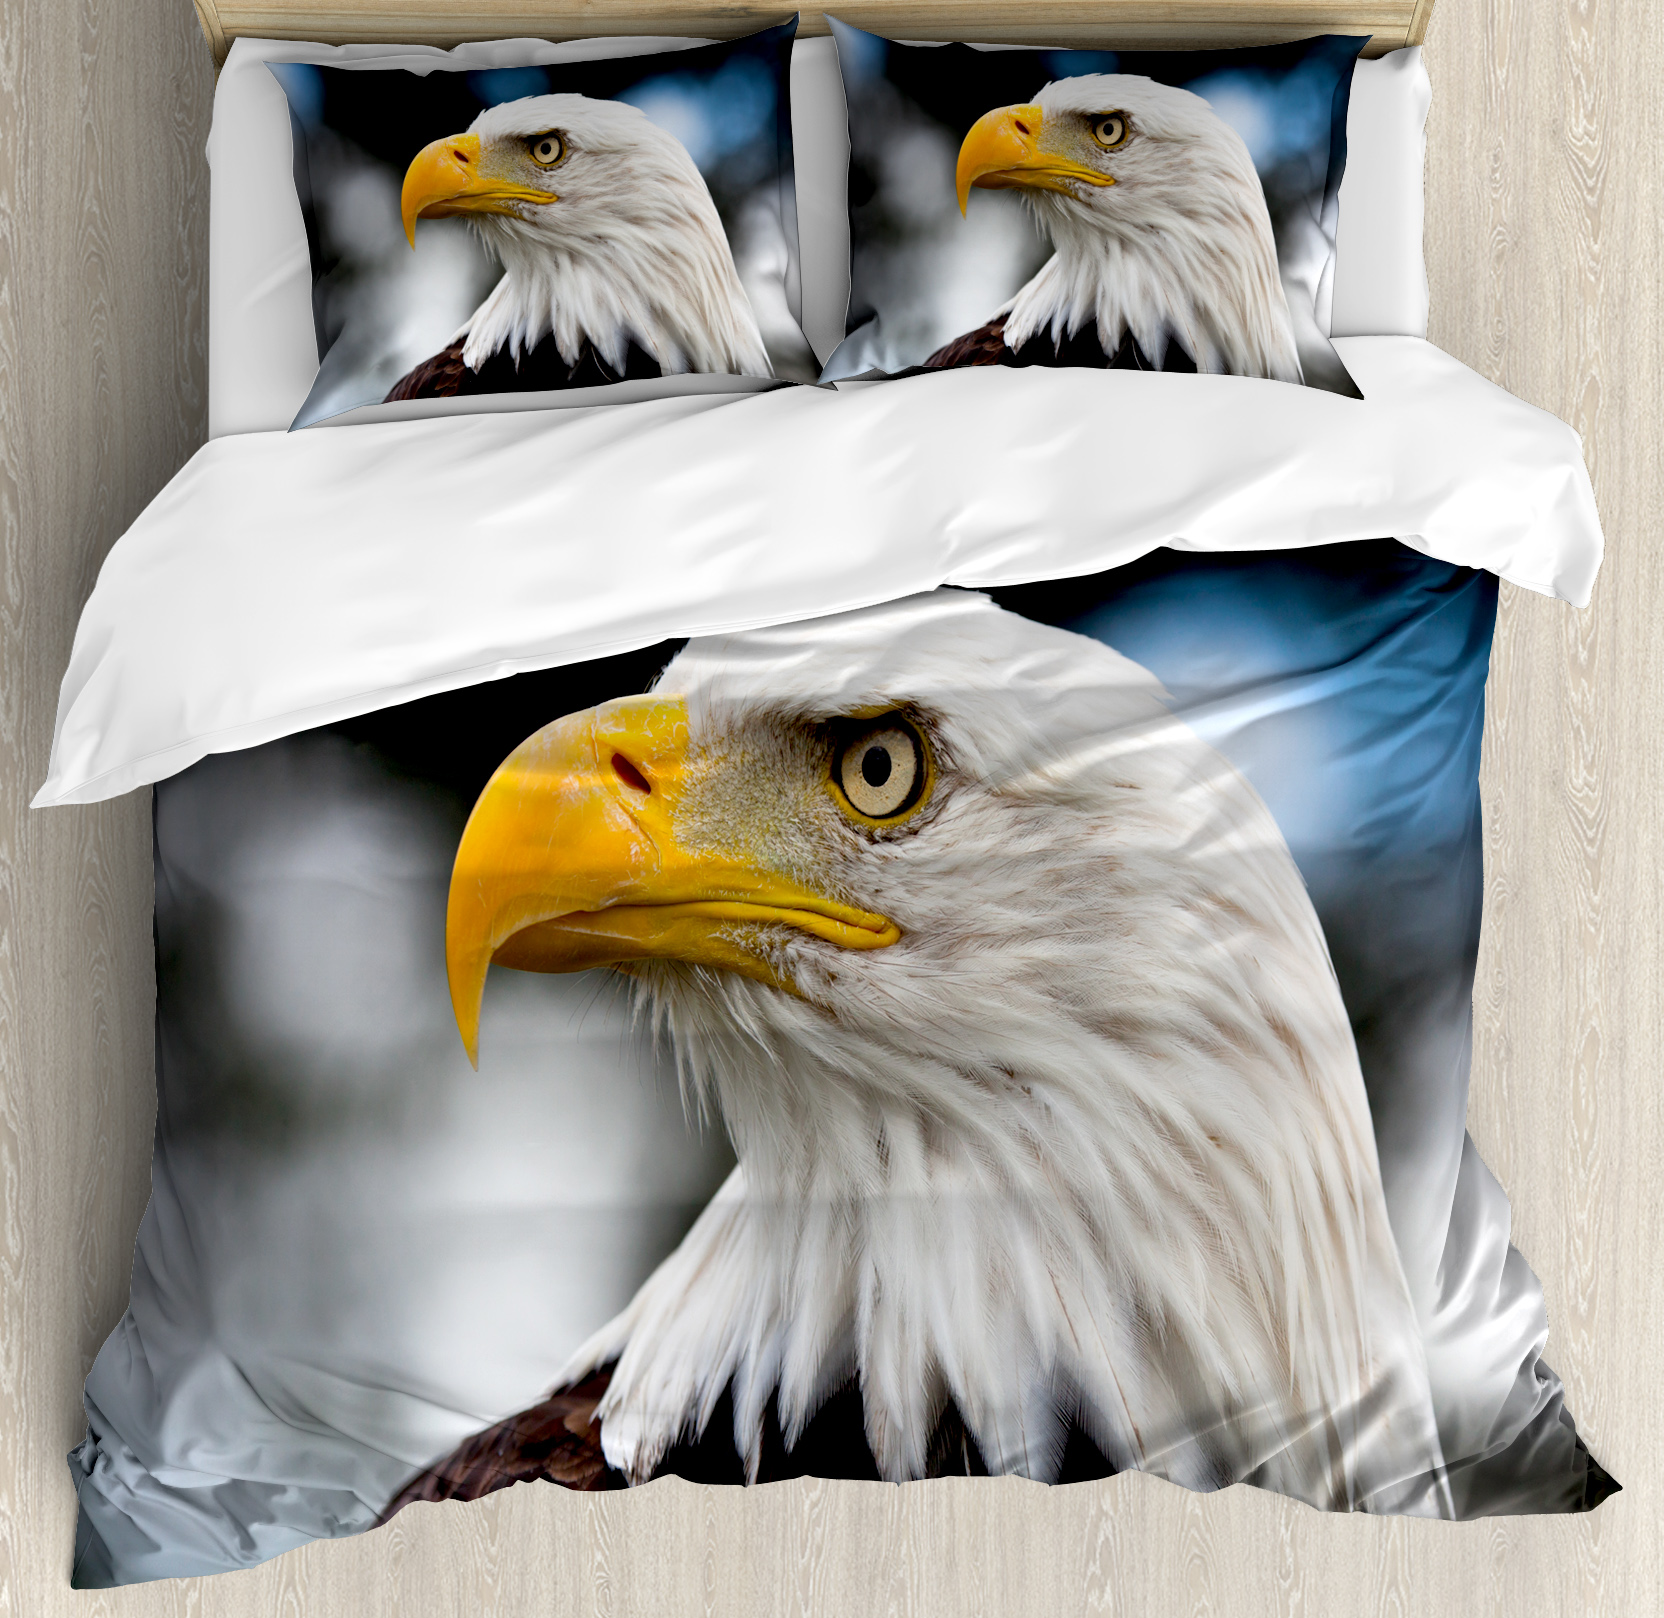 Eagle King Size Duvet Cover Set, Photo of the Head of Freedom Symbol in America with Blurred Background, Decorative 3 Piece Bedding Set with 2 Pillow Shams, Dark Brown Marigold Blue, by Ambesonne